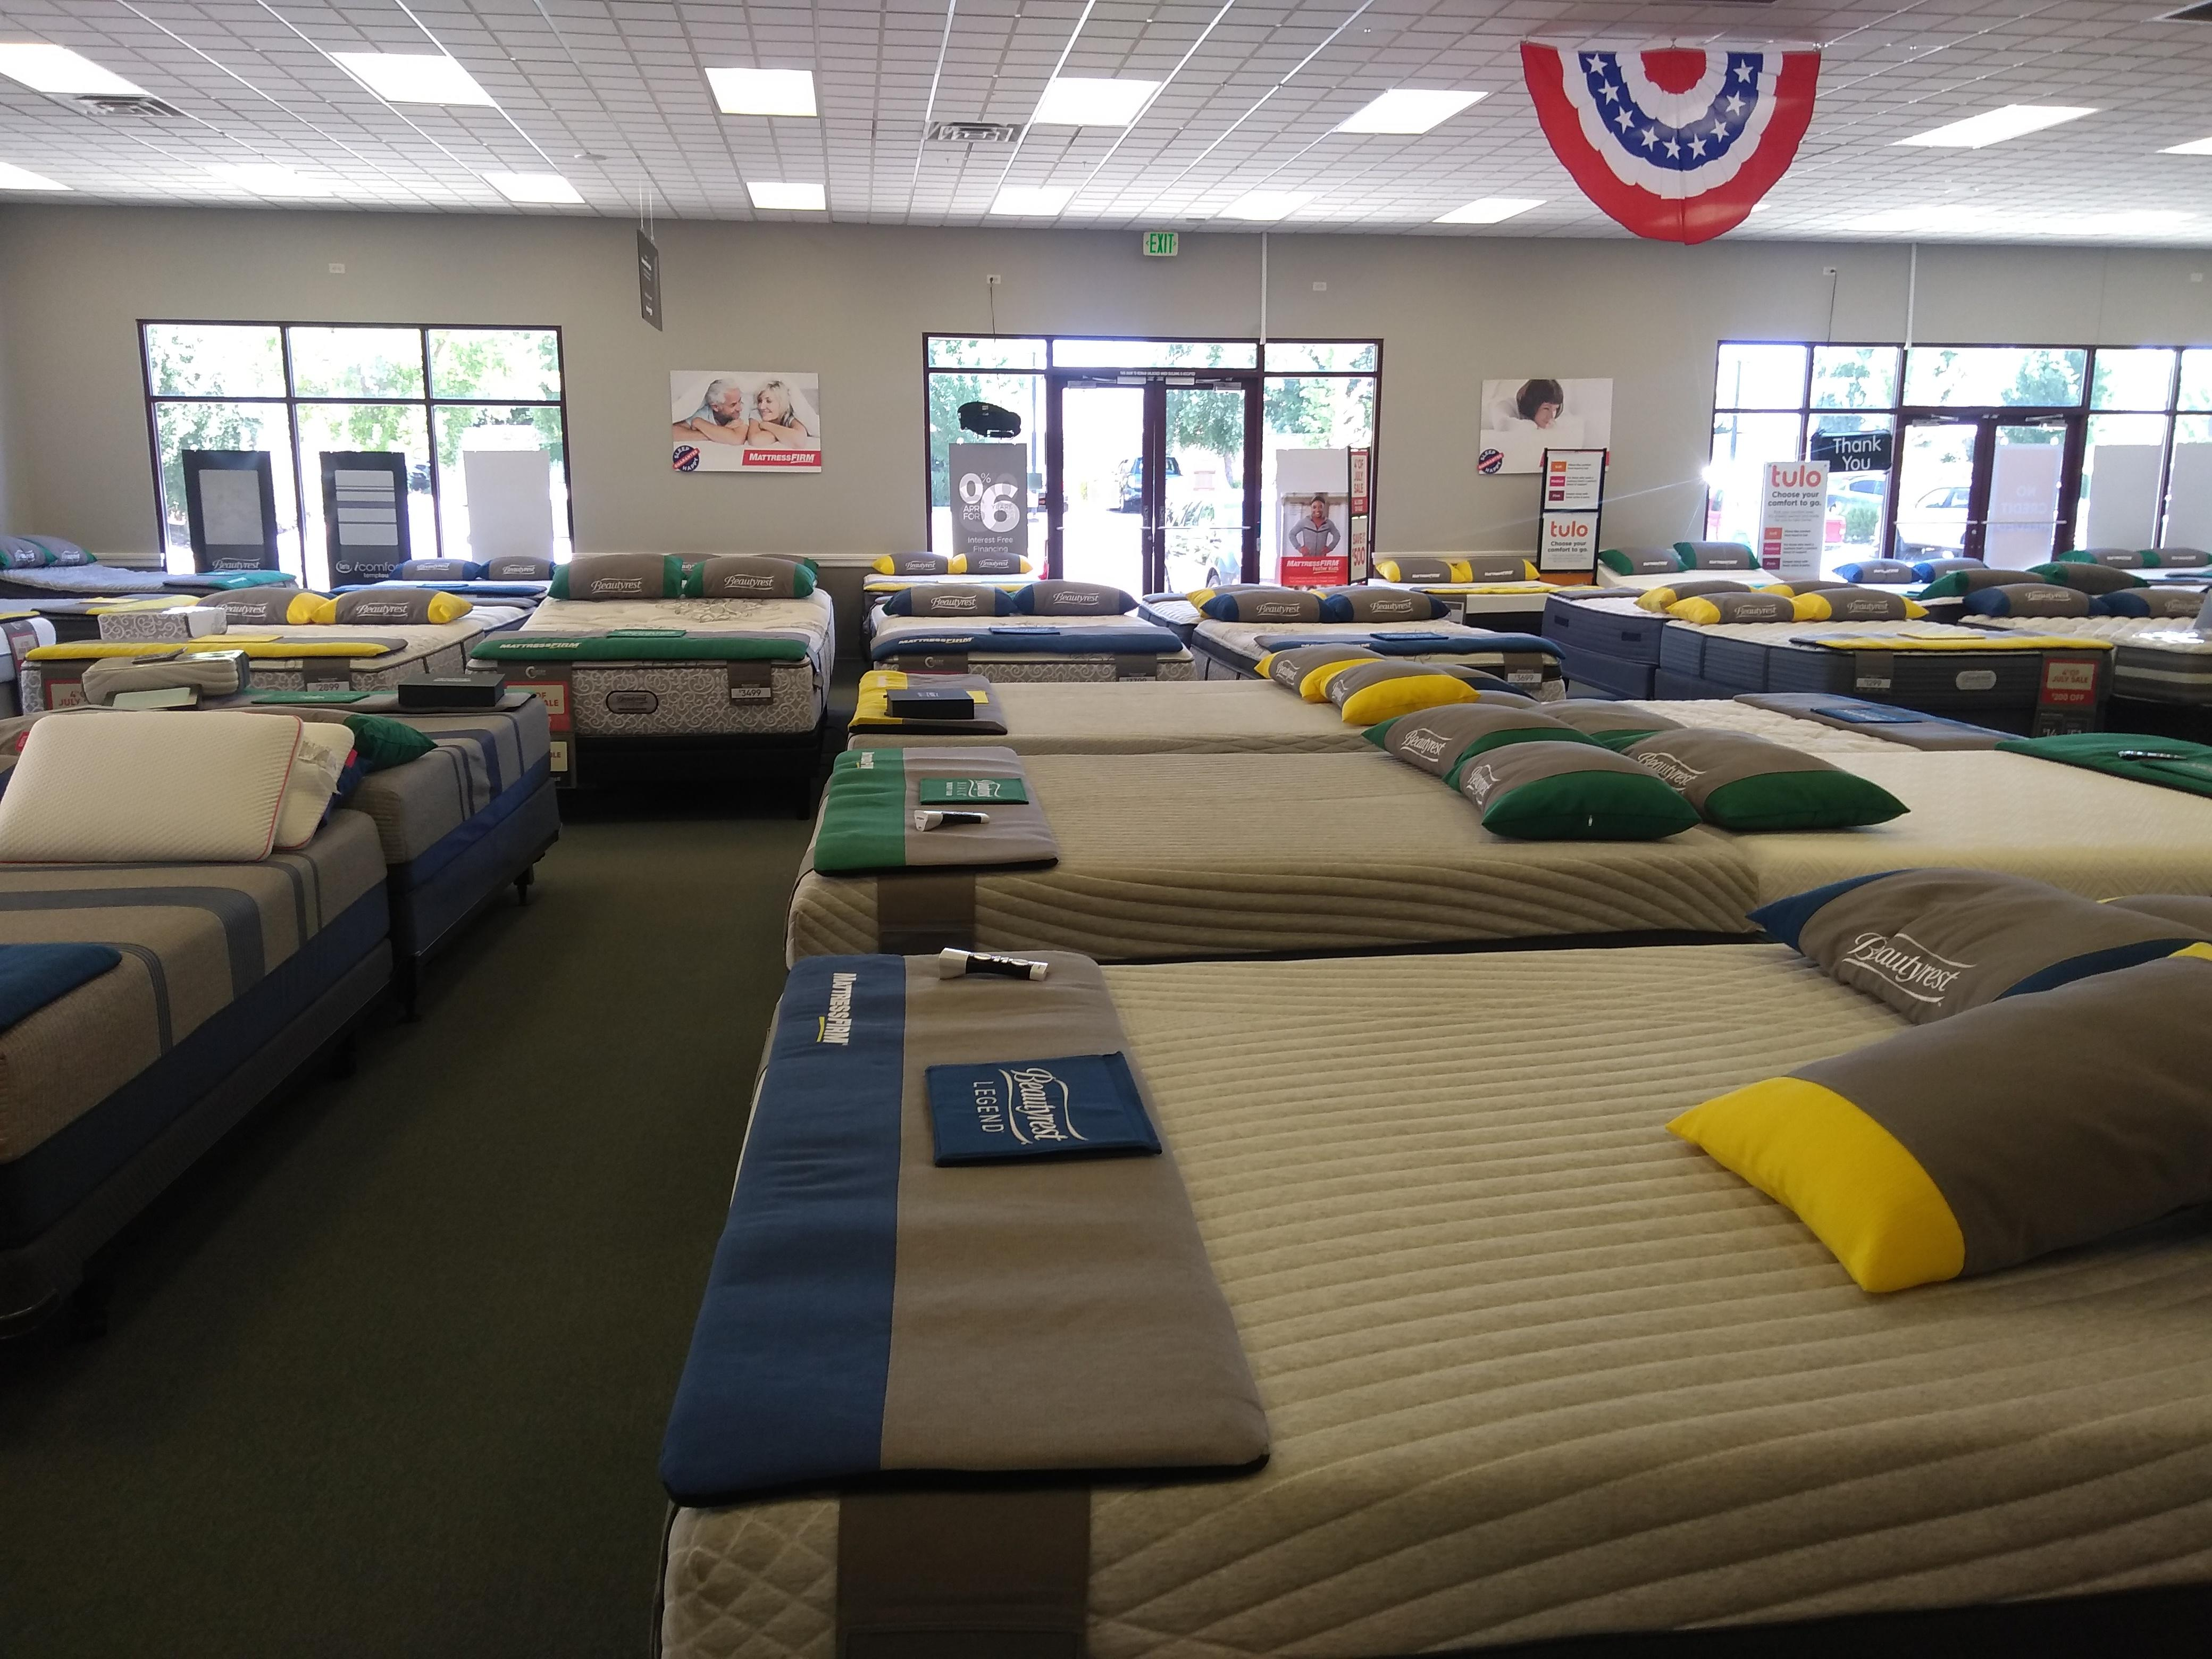 Mattress Firm Chico Forest Ave image 5